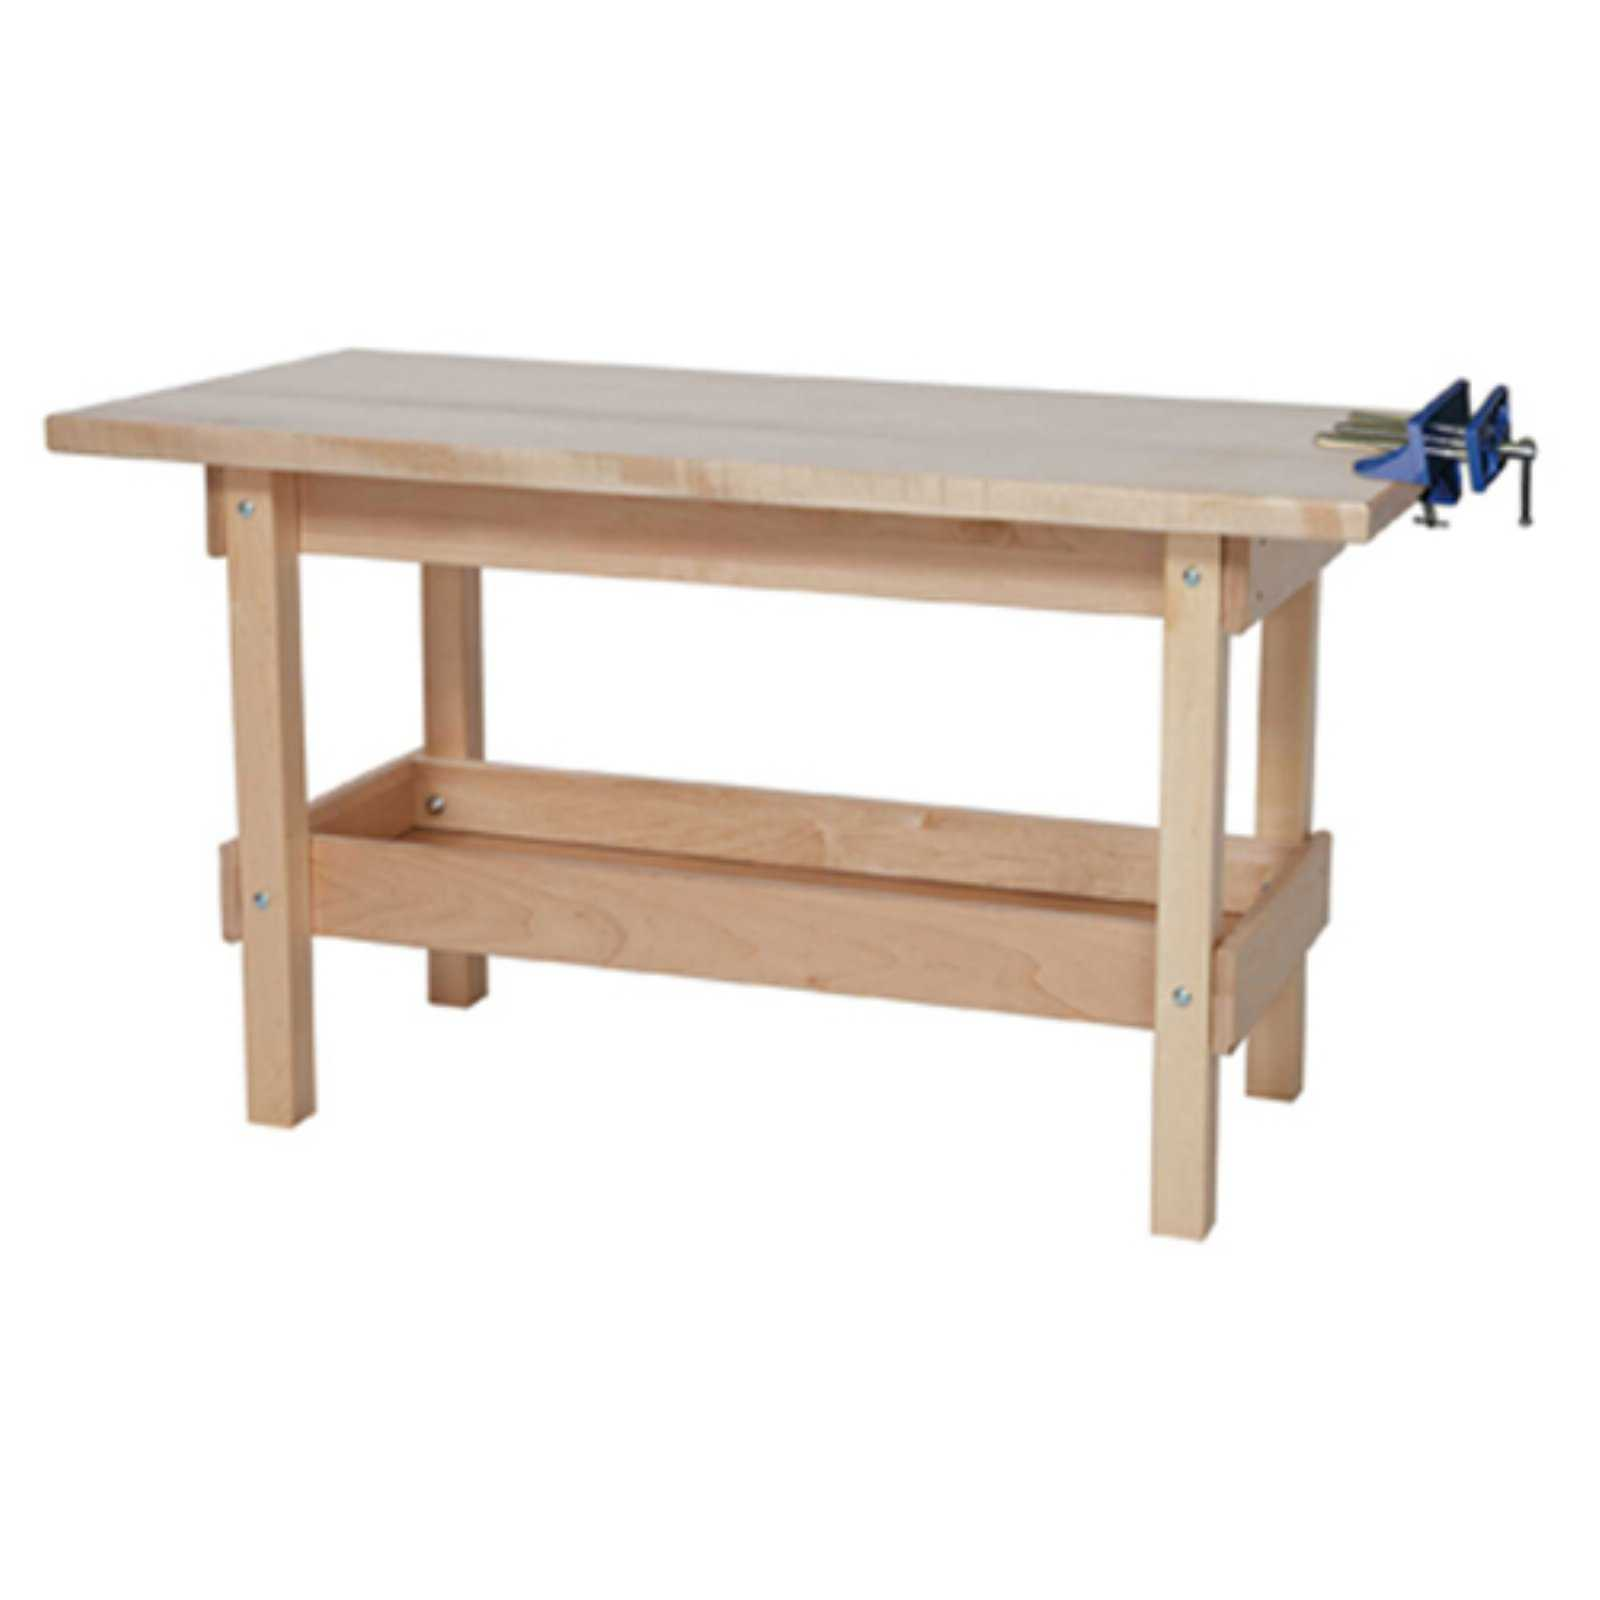 Wood Designs Workbench